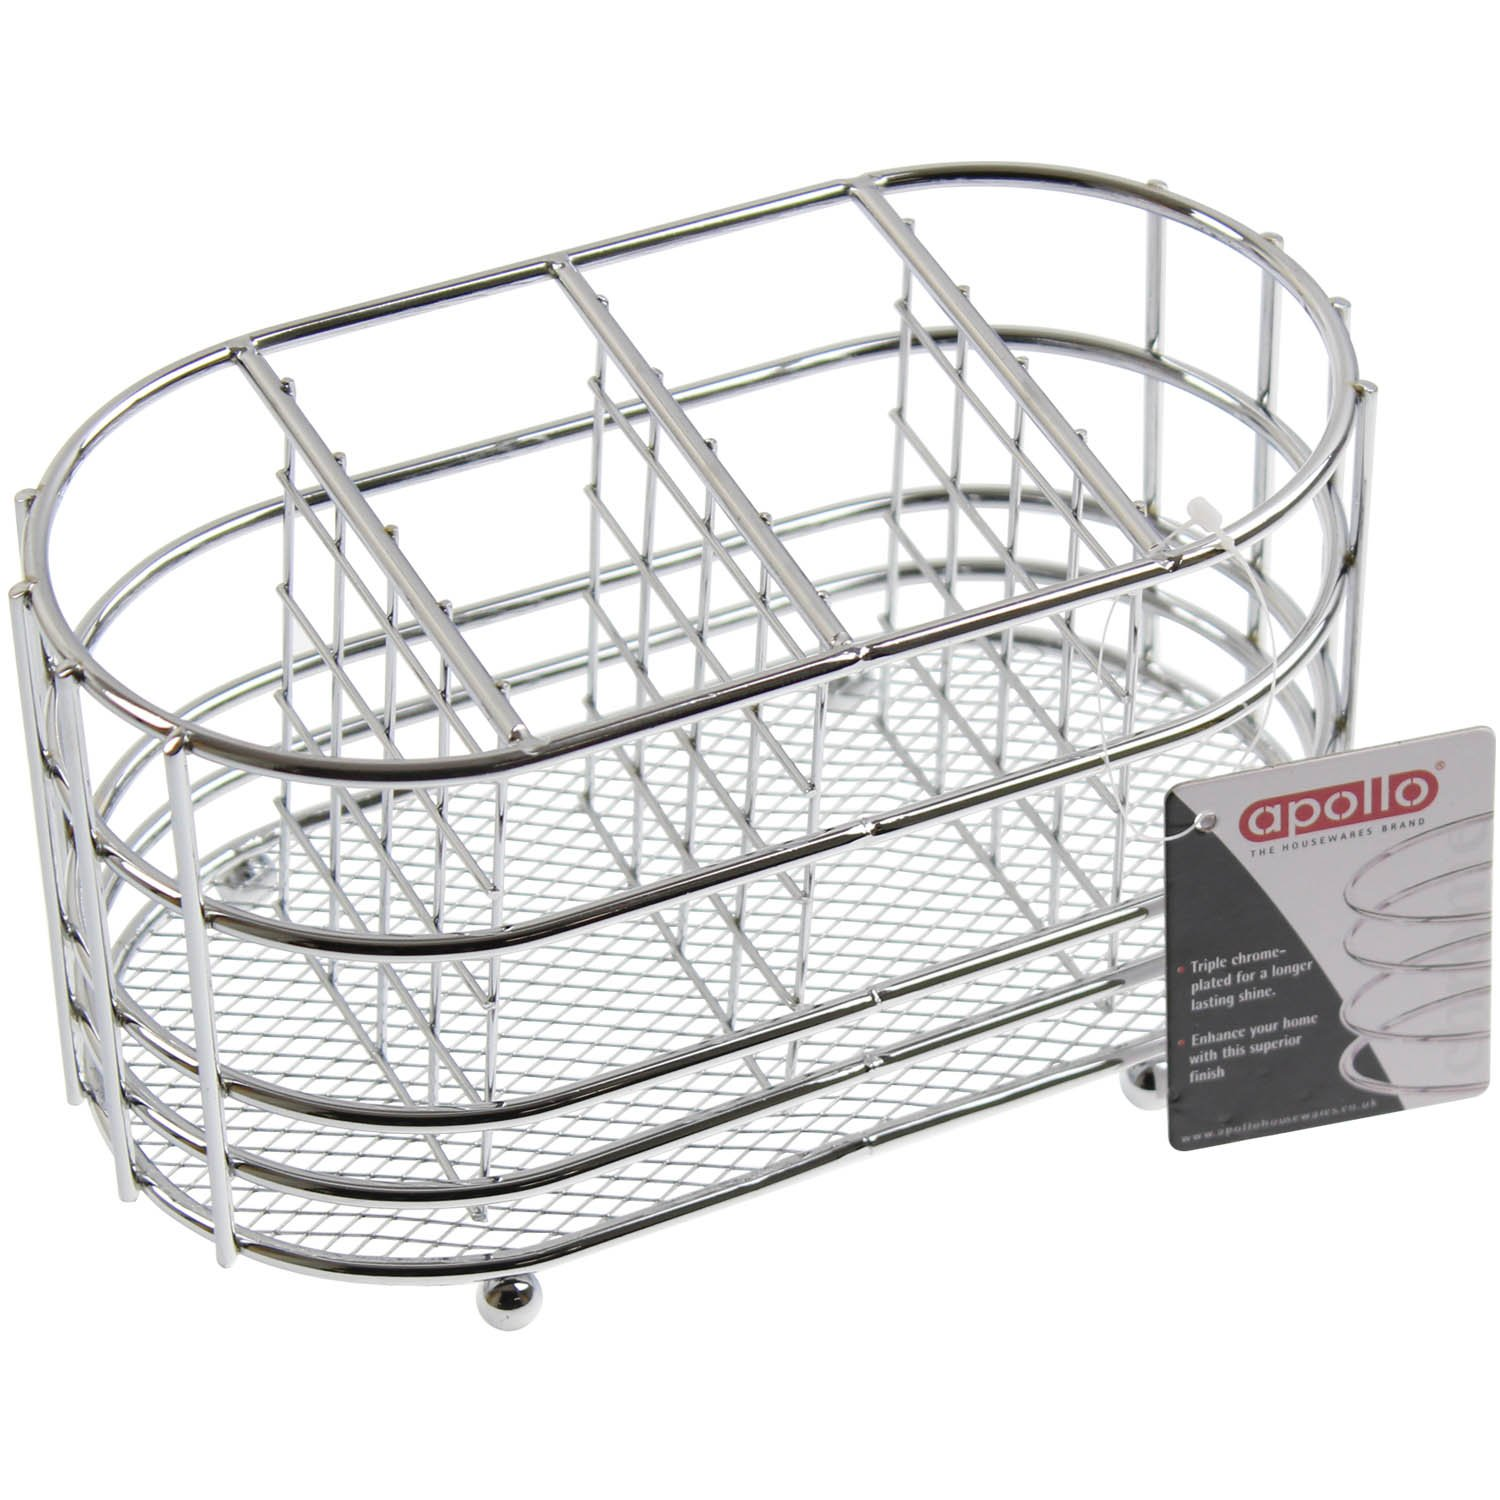 APOLLO 5661 - Chrome Cuttlery Caddy Oval in Chrome Apollo Housewares